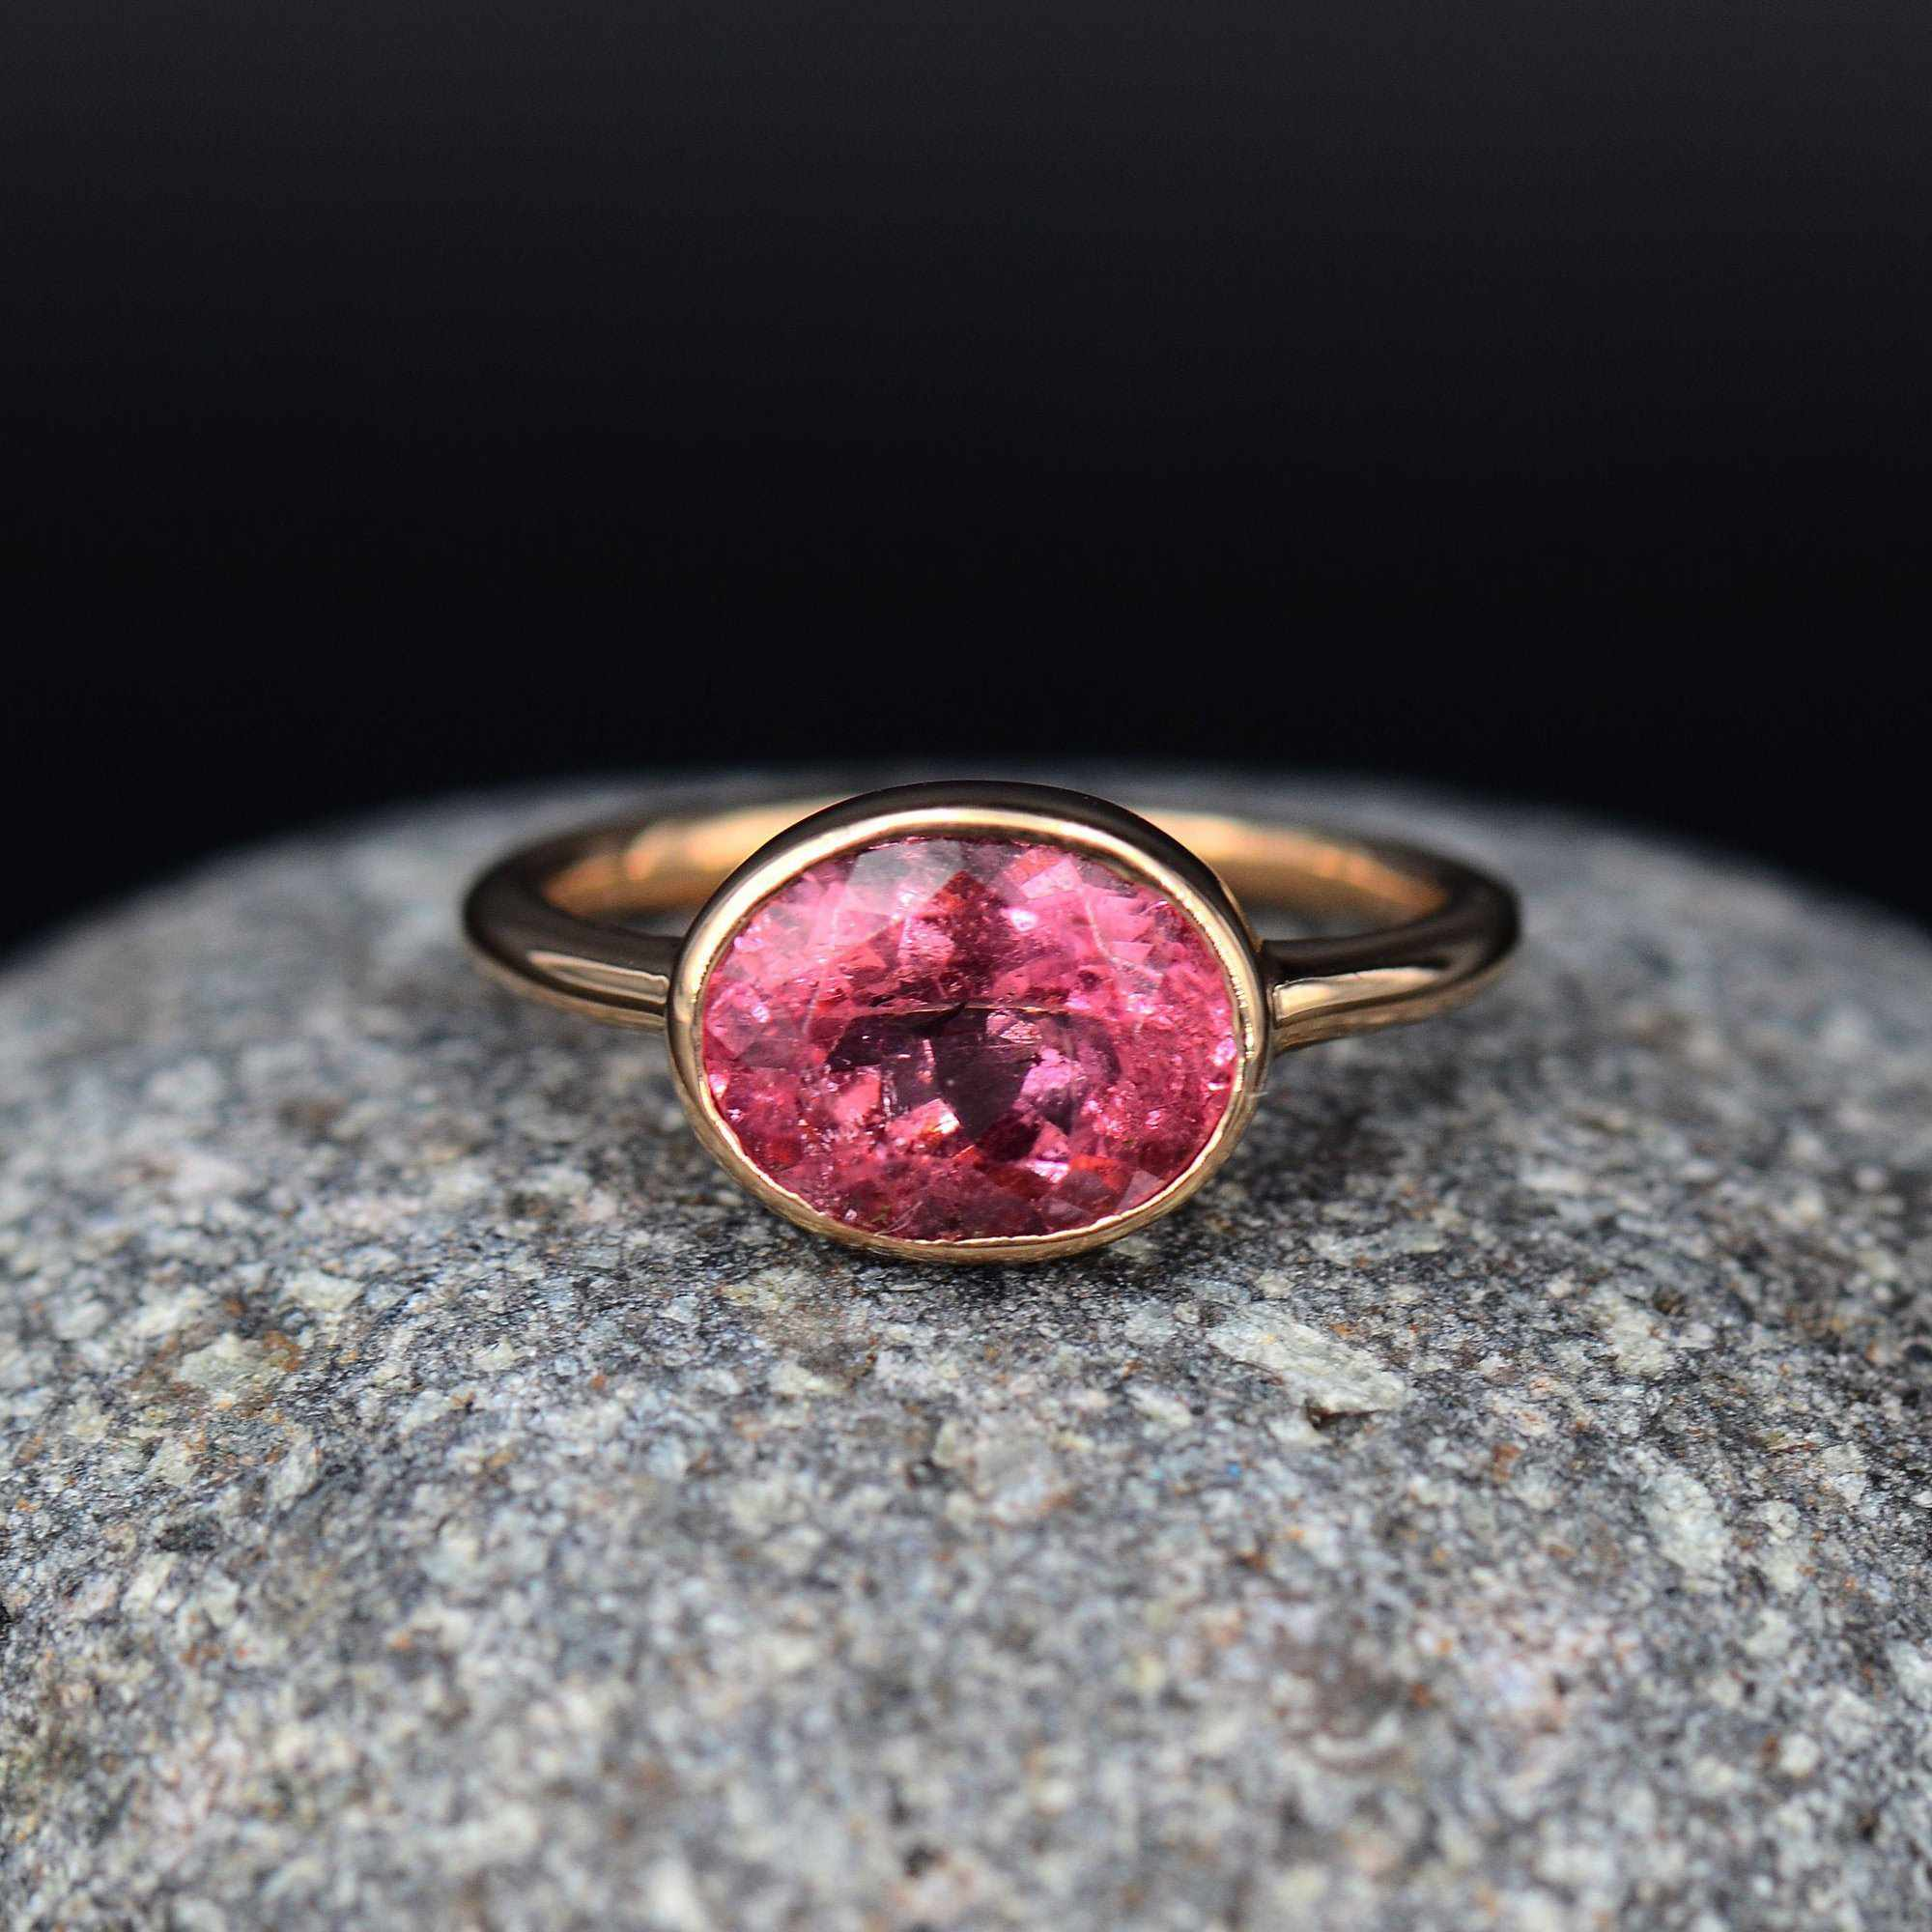 Pink Tourmaline Ring, Multi Tourmaline Ring, Genuine Tourmaline, Sterling Silver Solid Gold Gemstone Ring, Solitaire Ring Natural Tourmaline